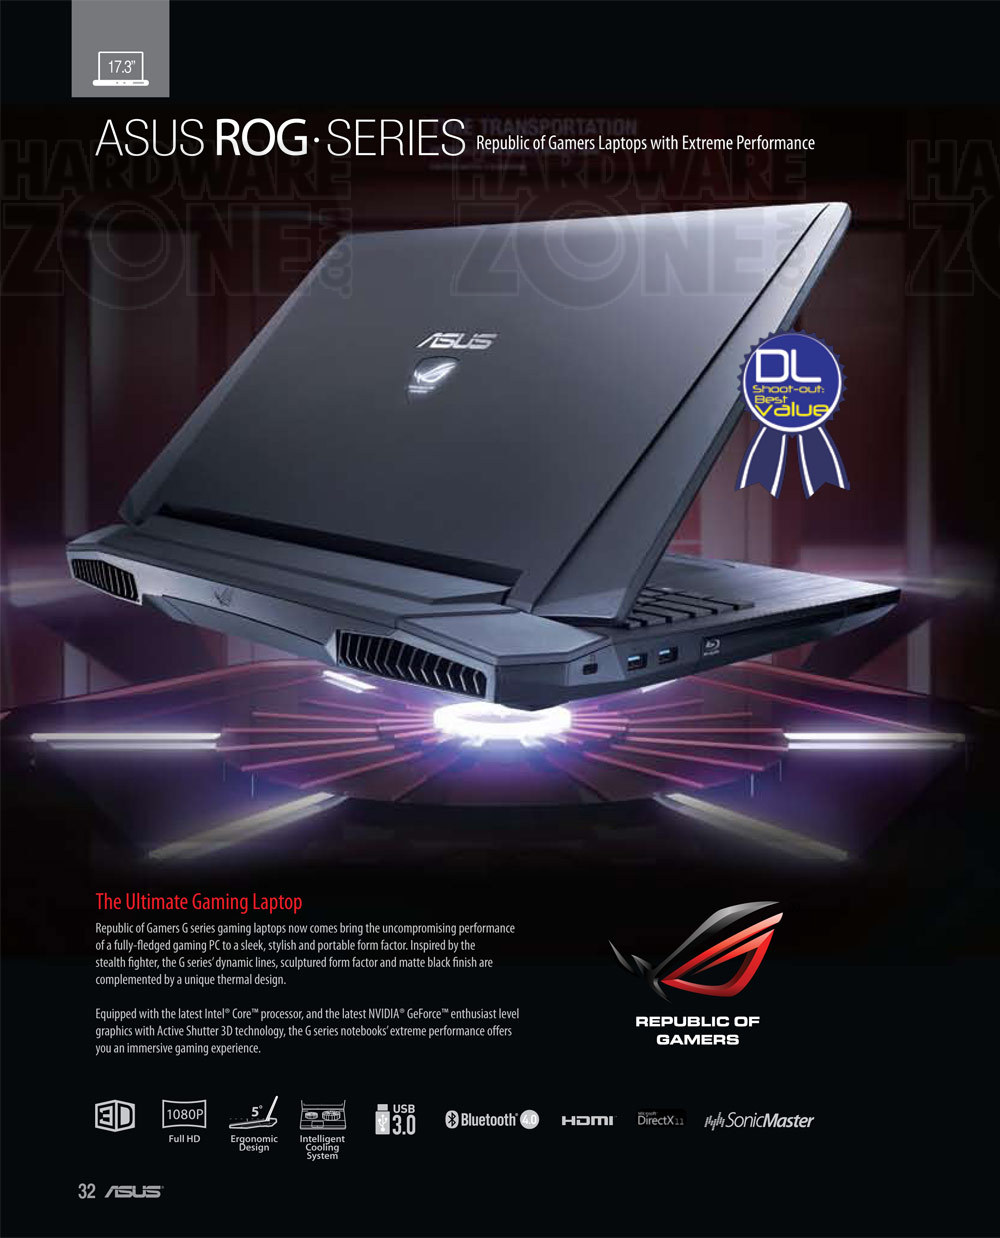 ASUS ROG-series notebooks - page 1